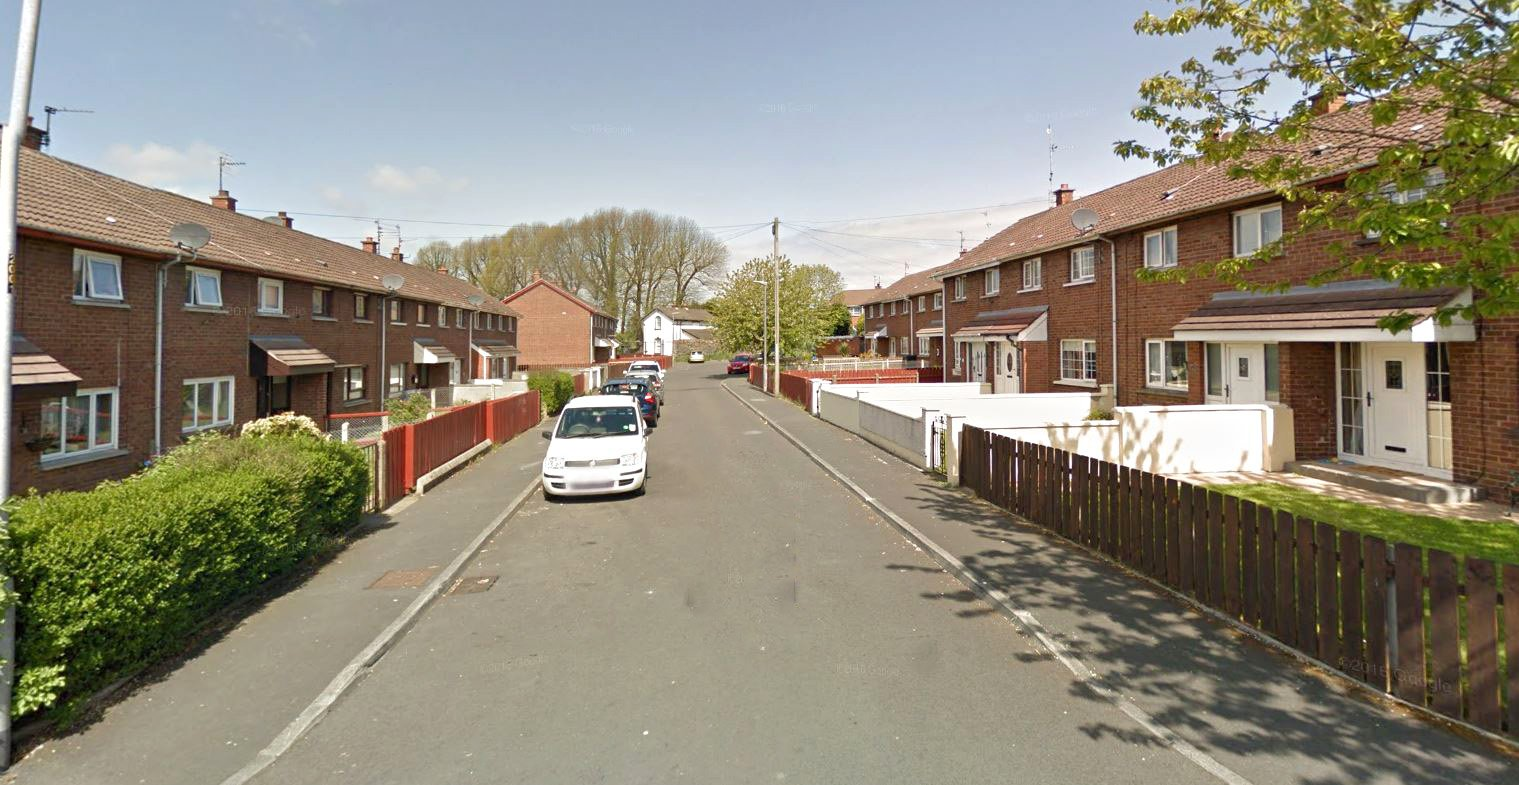 Teenage girl stabbed in Northern Ireland The incident happened around 9pm on Friday in the Deans Walk area of the County Armagh town, police said. Provider: Google Map Source: https://www.google.com/maps/@54.464989,-6.340616,3a,75y,324.17h,91.91t/data=!3m6!1e1!3m4!1sRlSnSLRuwdBBGPUi55hCXA!2e0!7i13312!8i6656